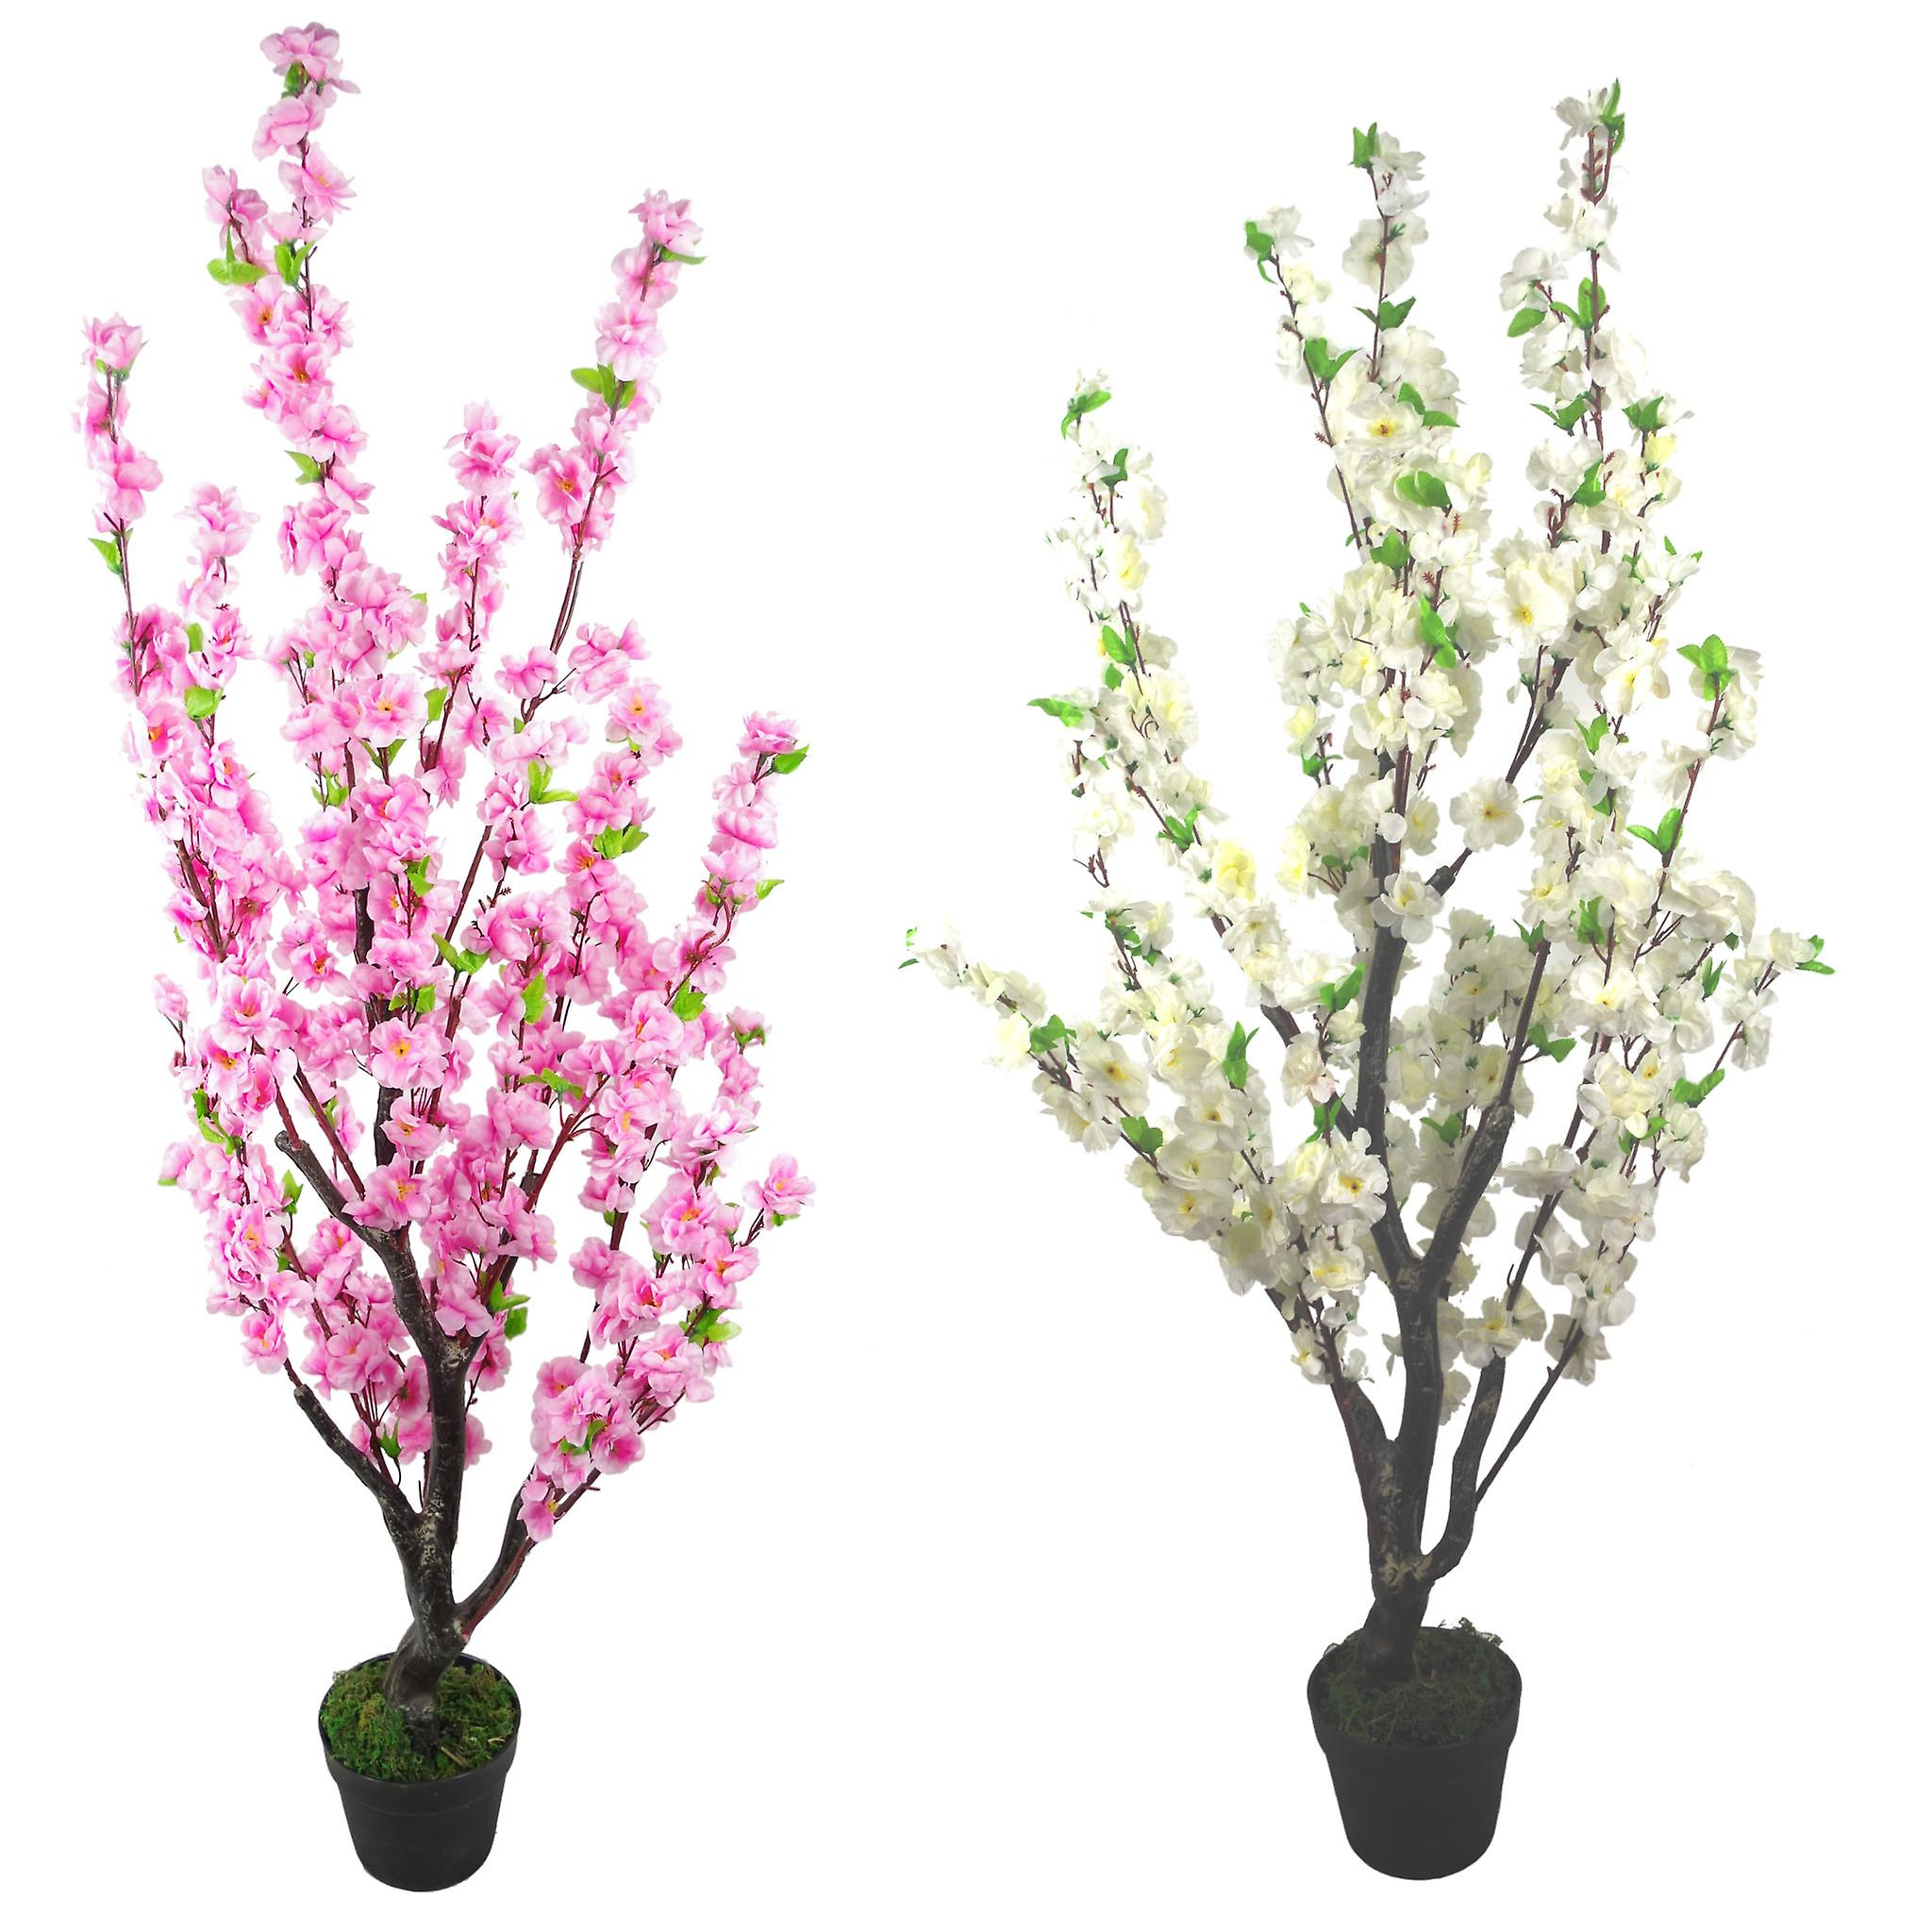 120cm Realistic Artificial Cherry Blossom Tree - Potted - White Silk Flowers